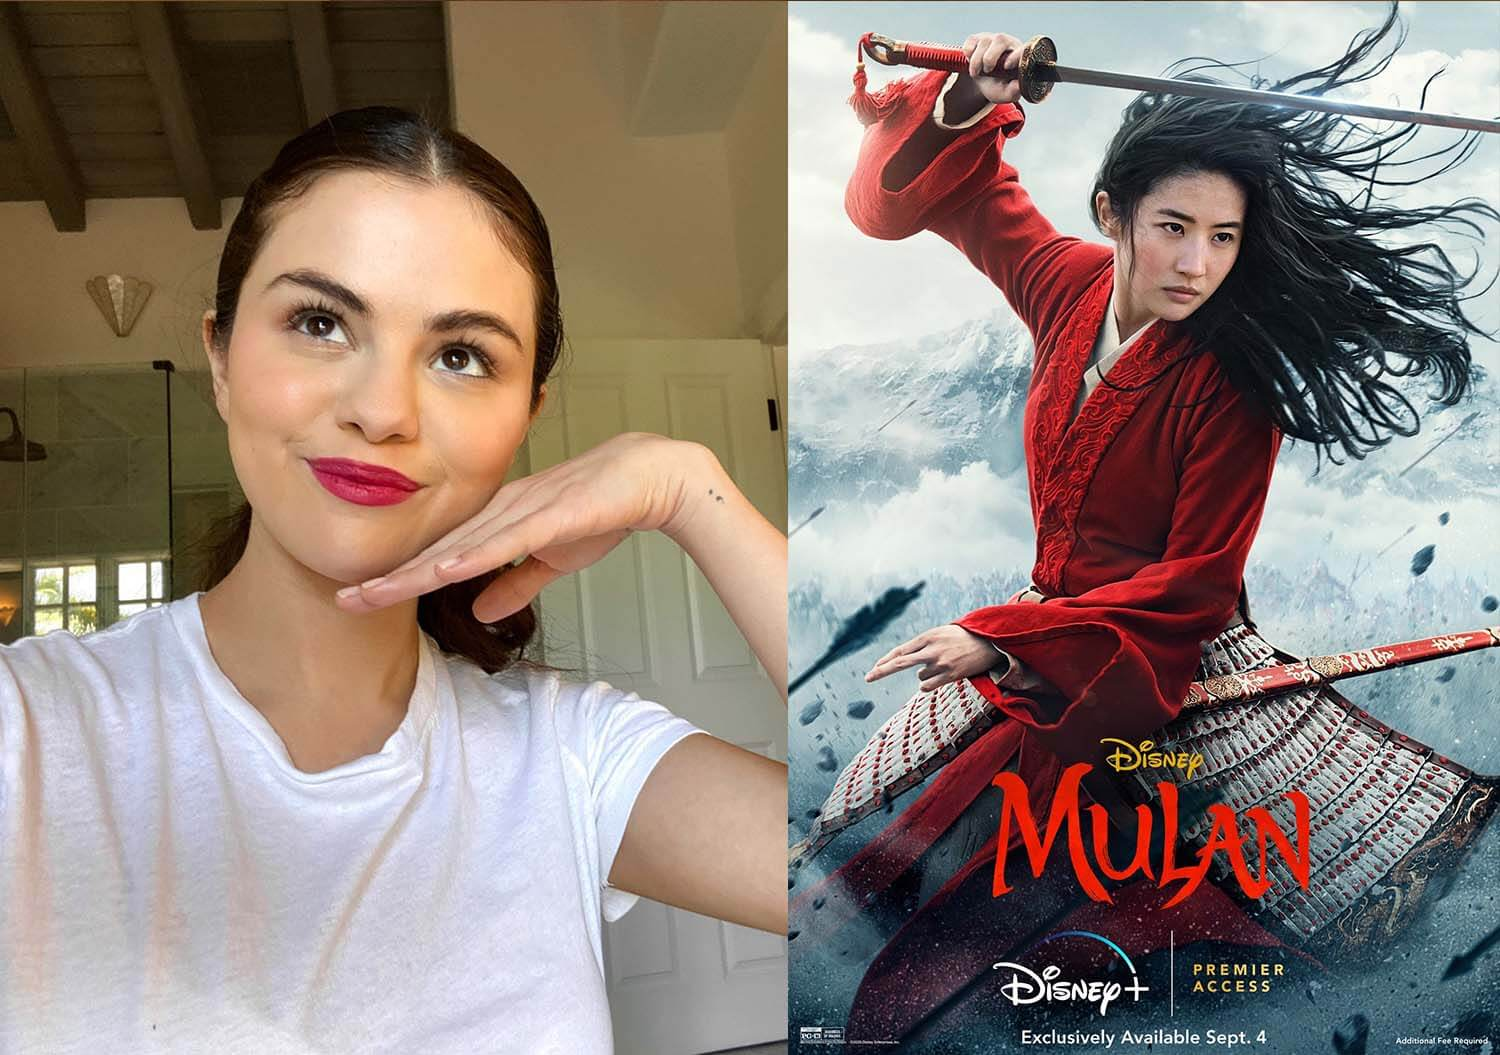 Action Mulan Secures Theatrical Release in China